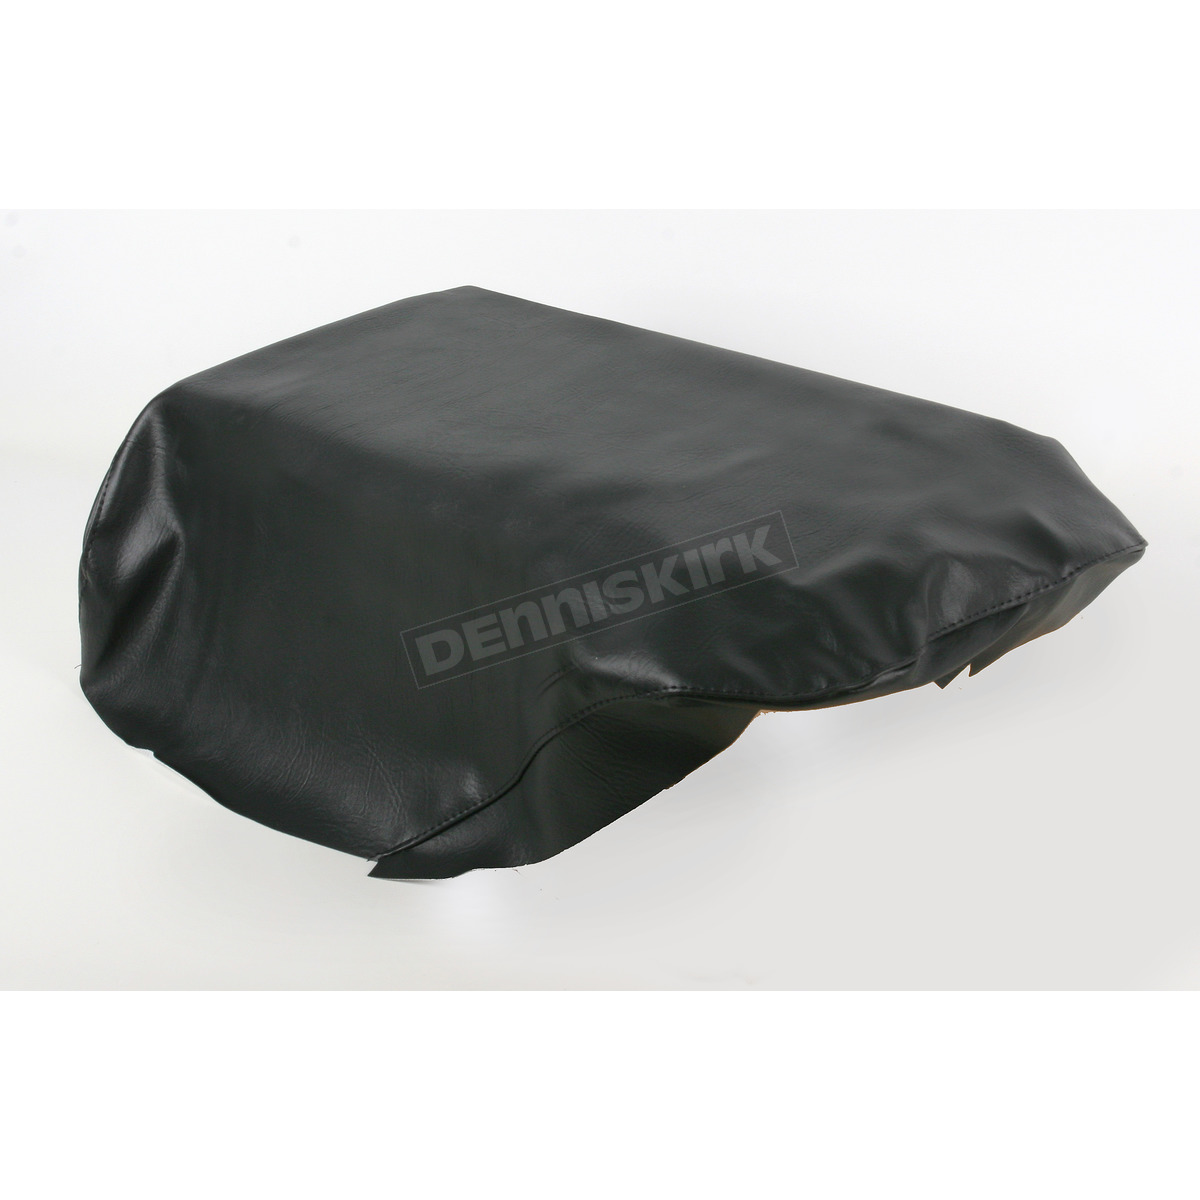 Replacement Seats Case : Oem replacement seat covers bing images